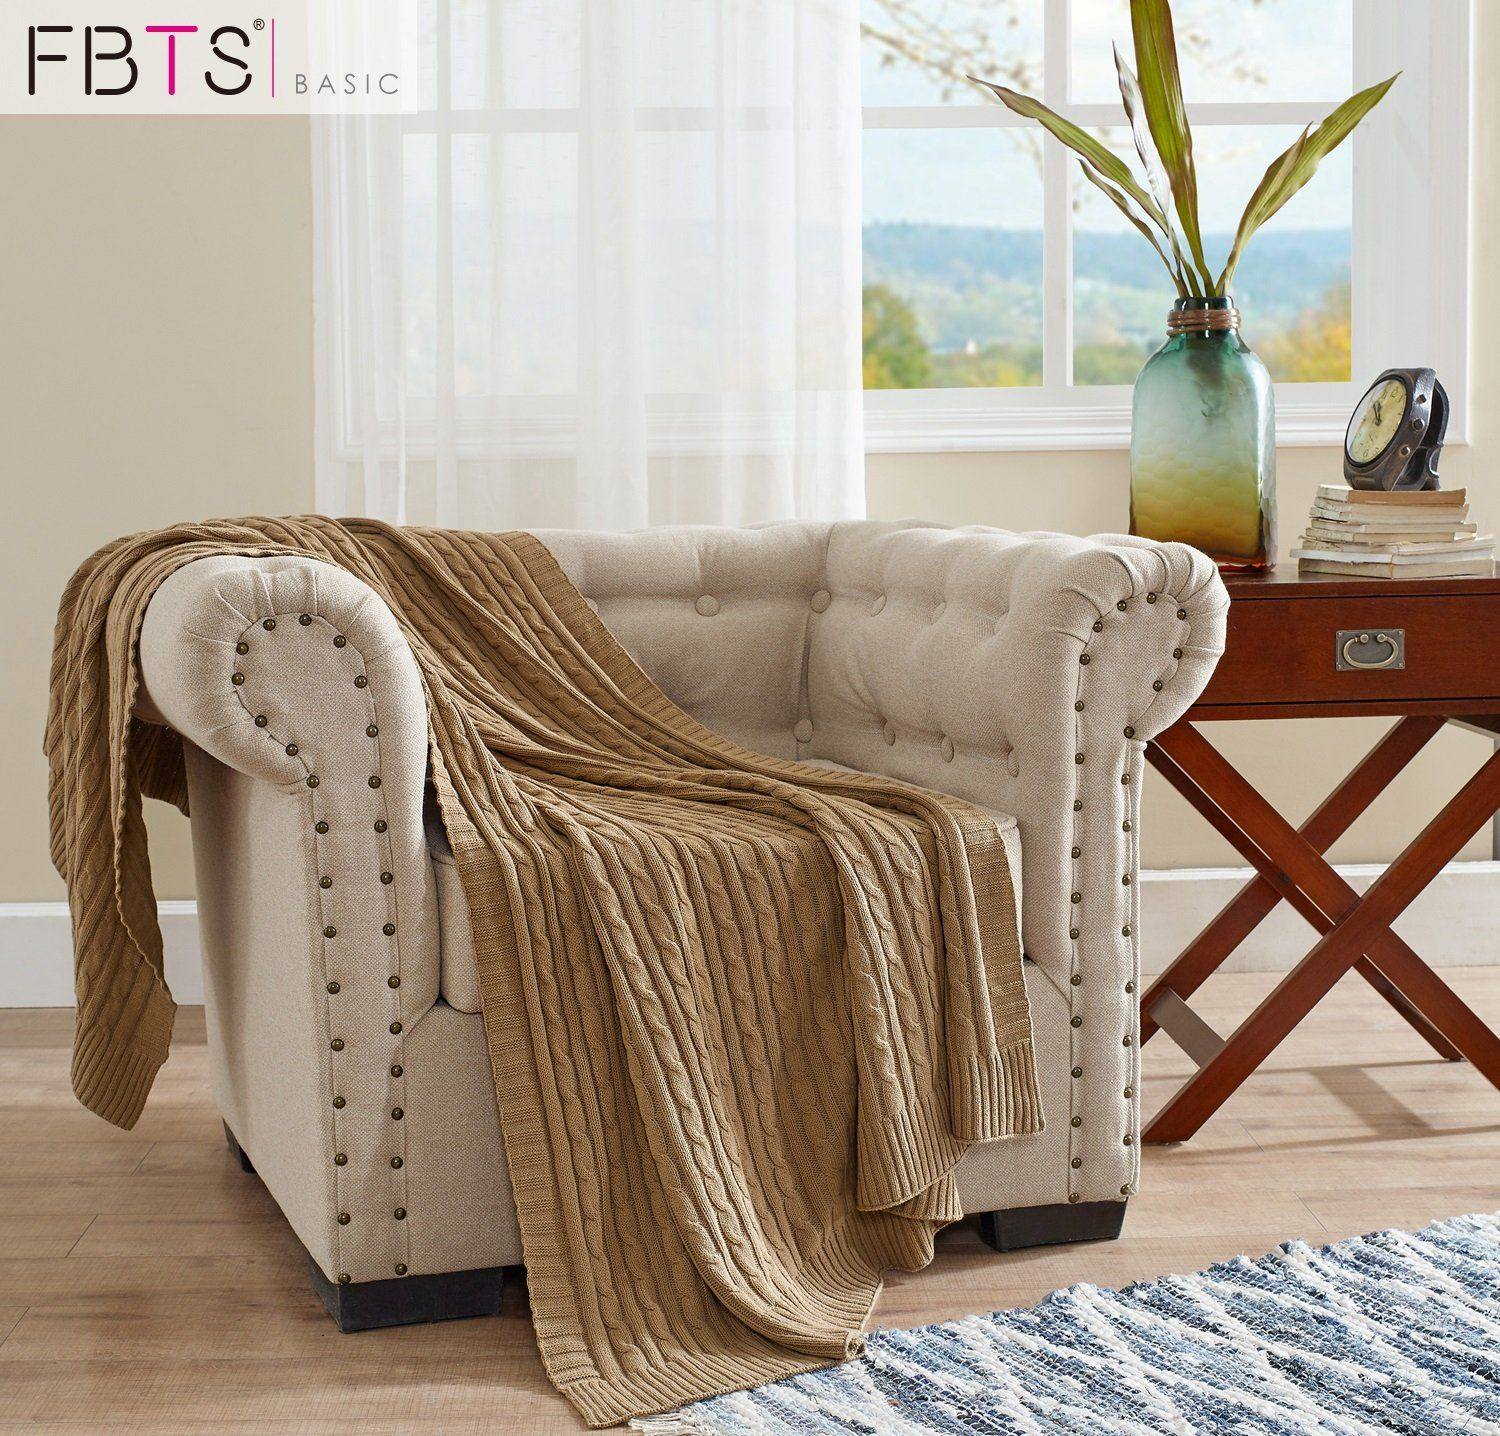 set throw ideas blankets couch fresh for luxury throws design best blanket s sofa gallery of